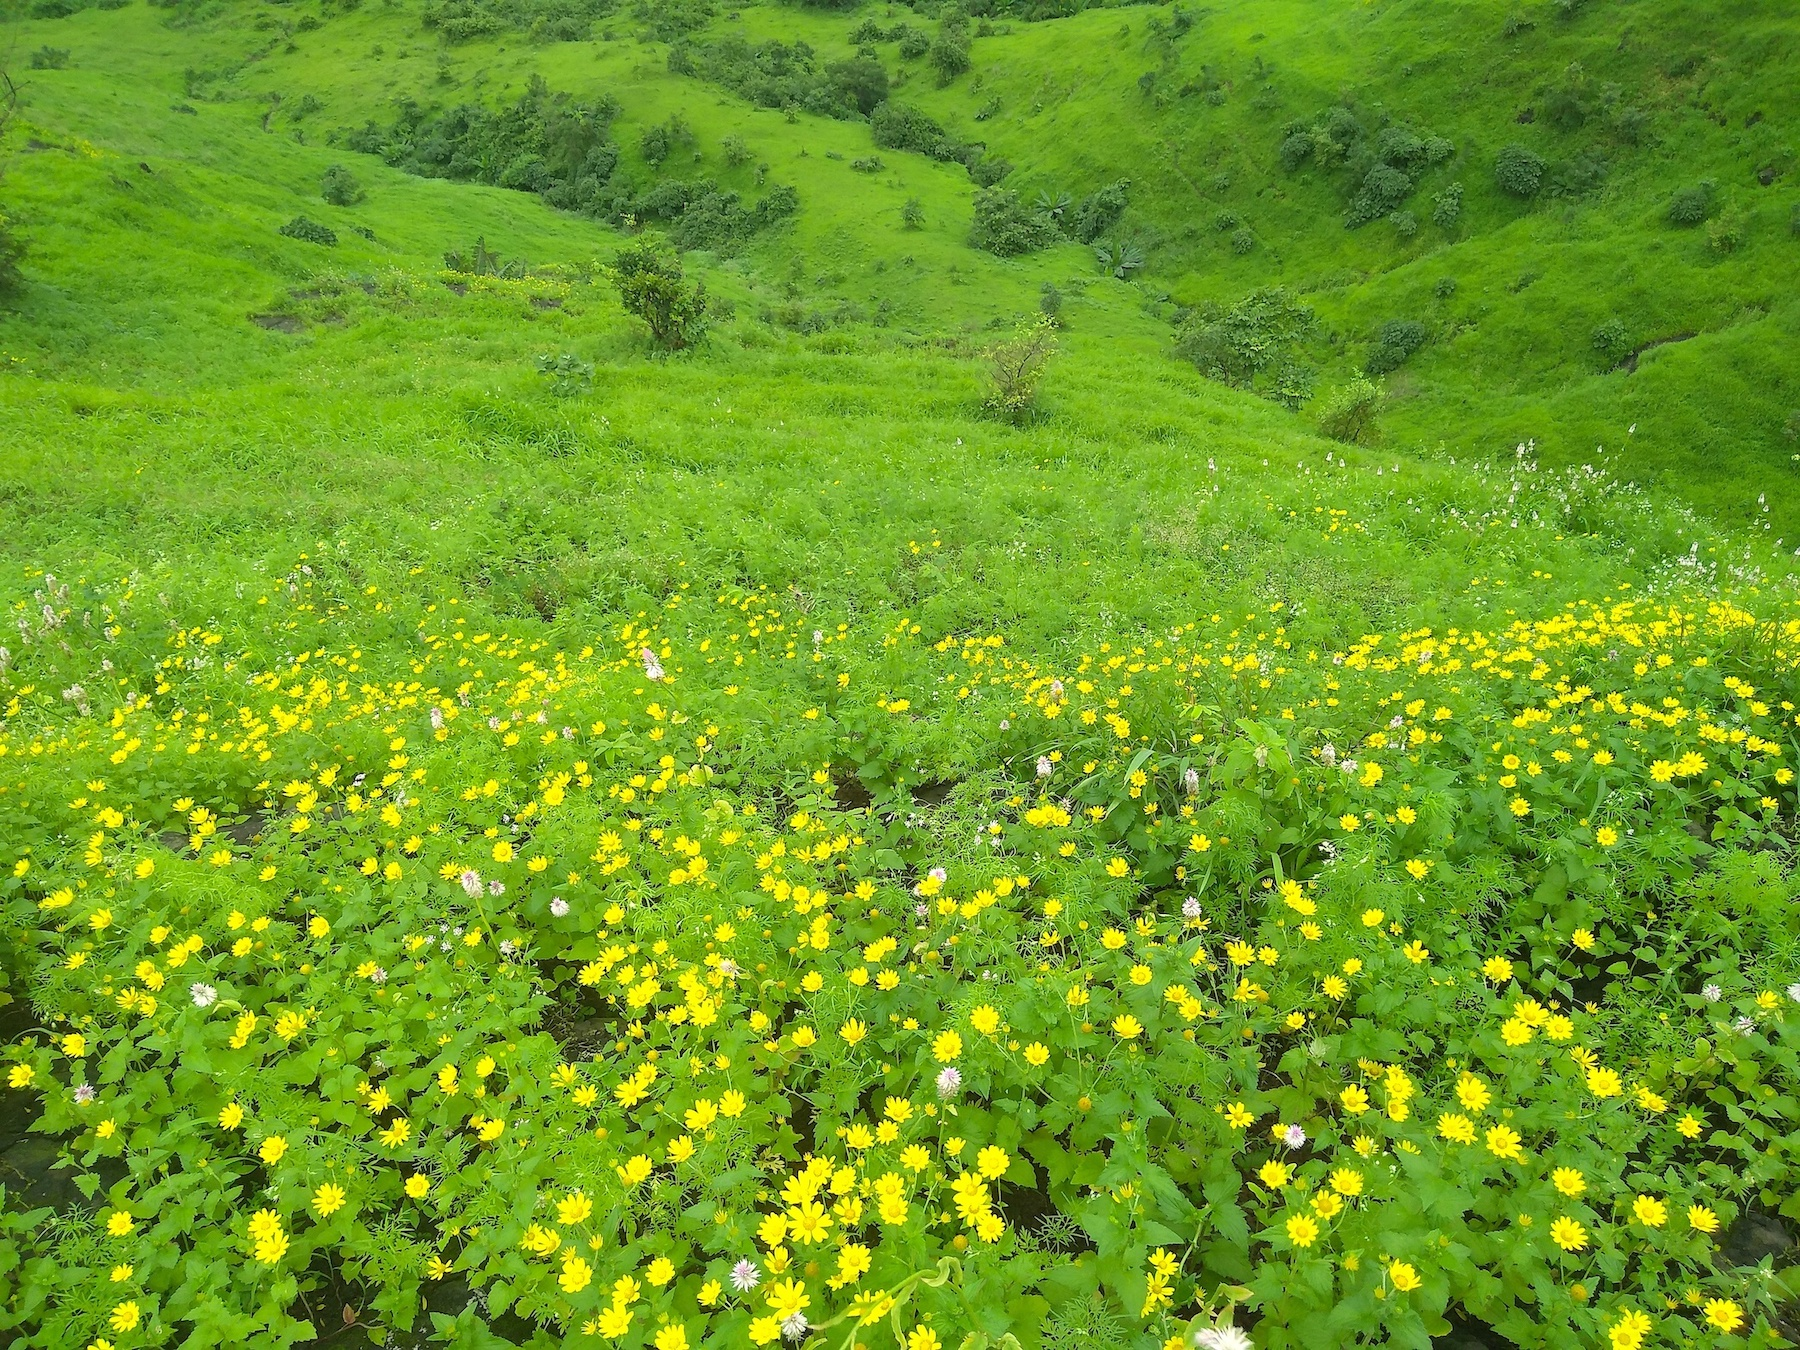 The first showers revive plants and flowers which bloom in myriad hues across the hillside. Photo: Anirudh Nair